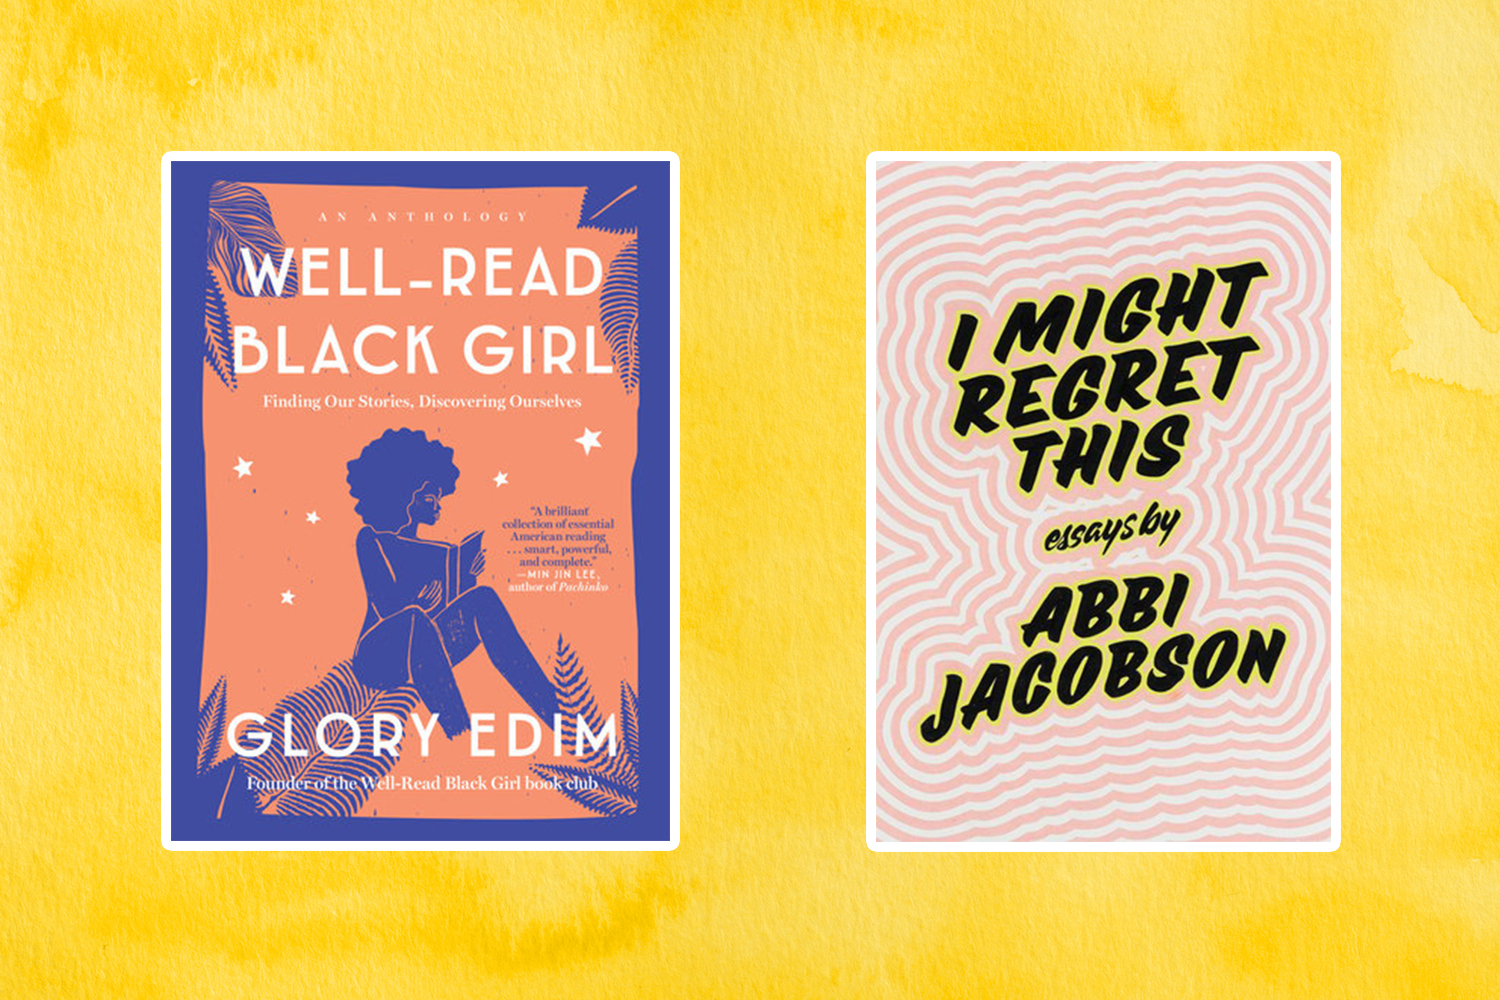 Books coming out this week: <em>Well-Read Black Girl</em>, <em>I Might Regret This</em>, and more